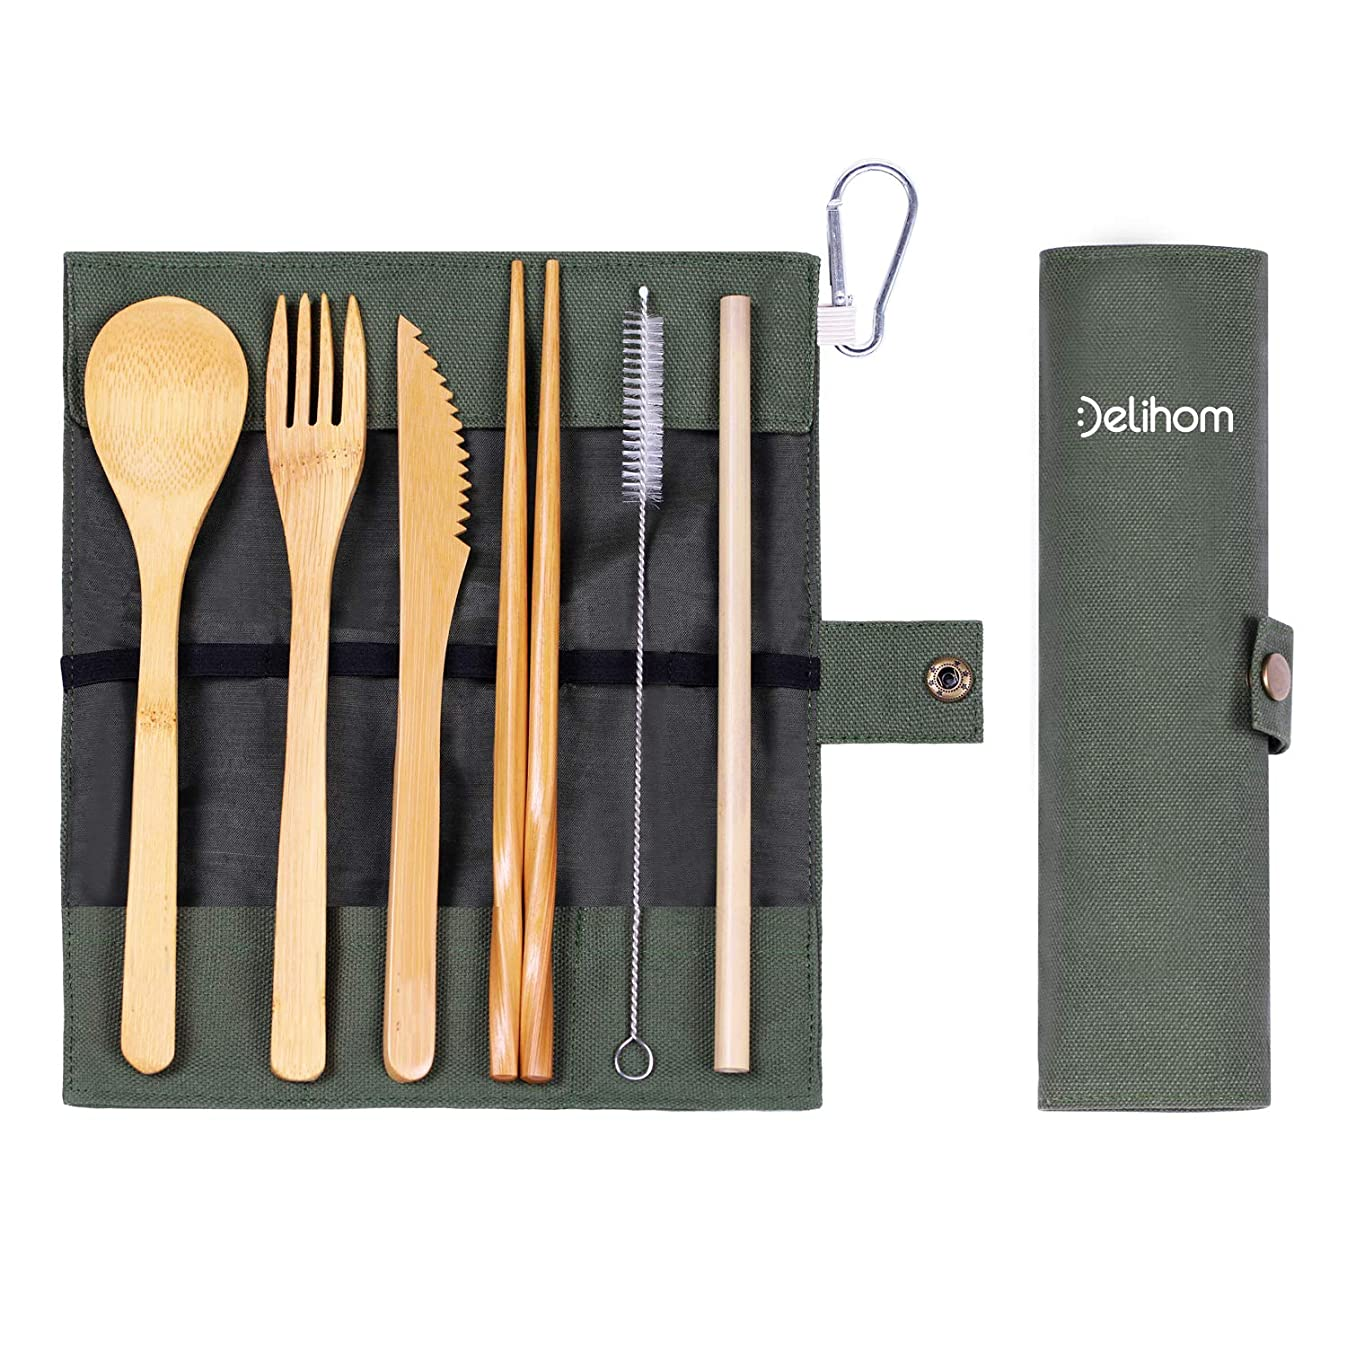 Delihom Bamboo Travel Utensil Set, Eco Friendly Camping Cutlery with Straw, Organic Bamboo Utensils with Cotton Pouch for Camping, Picnic, Office and School Lunch